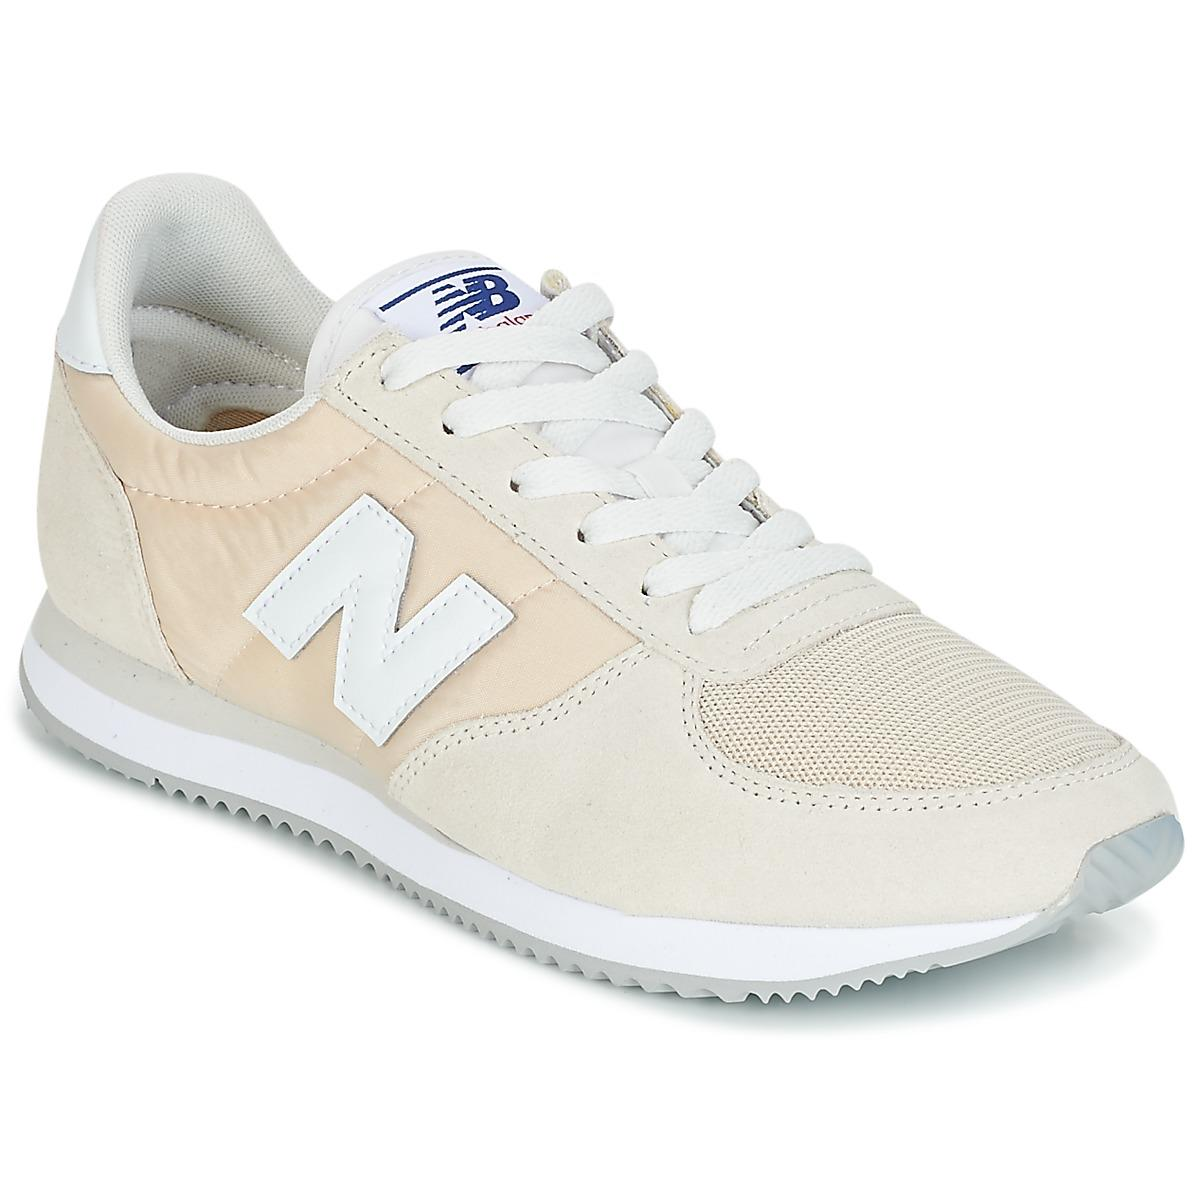 Discount New Balance U220 Beige Trainers for Men On Sale